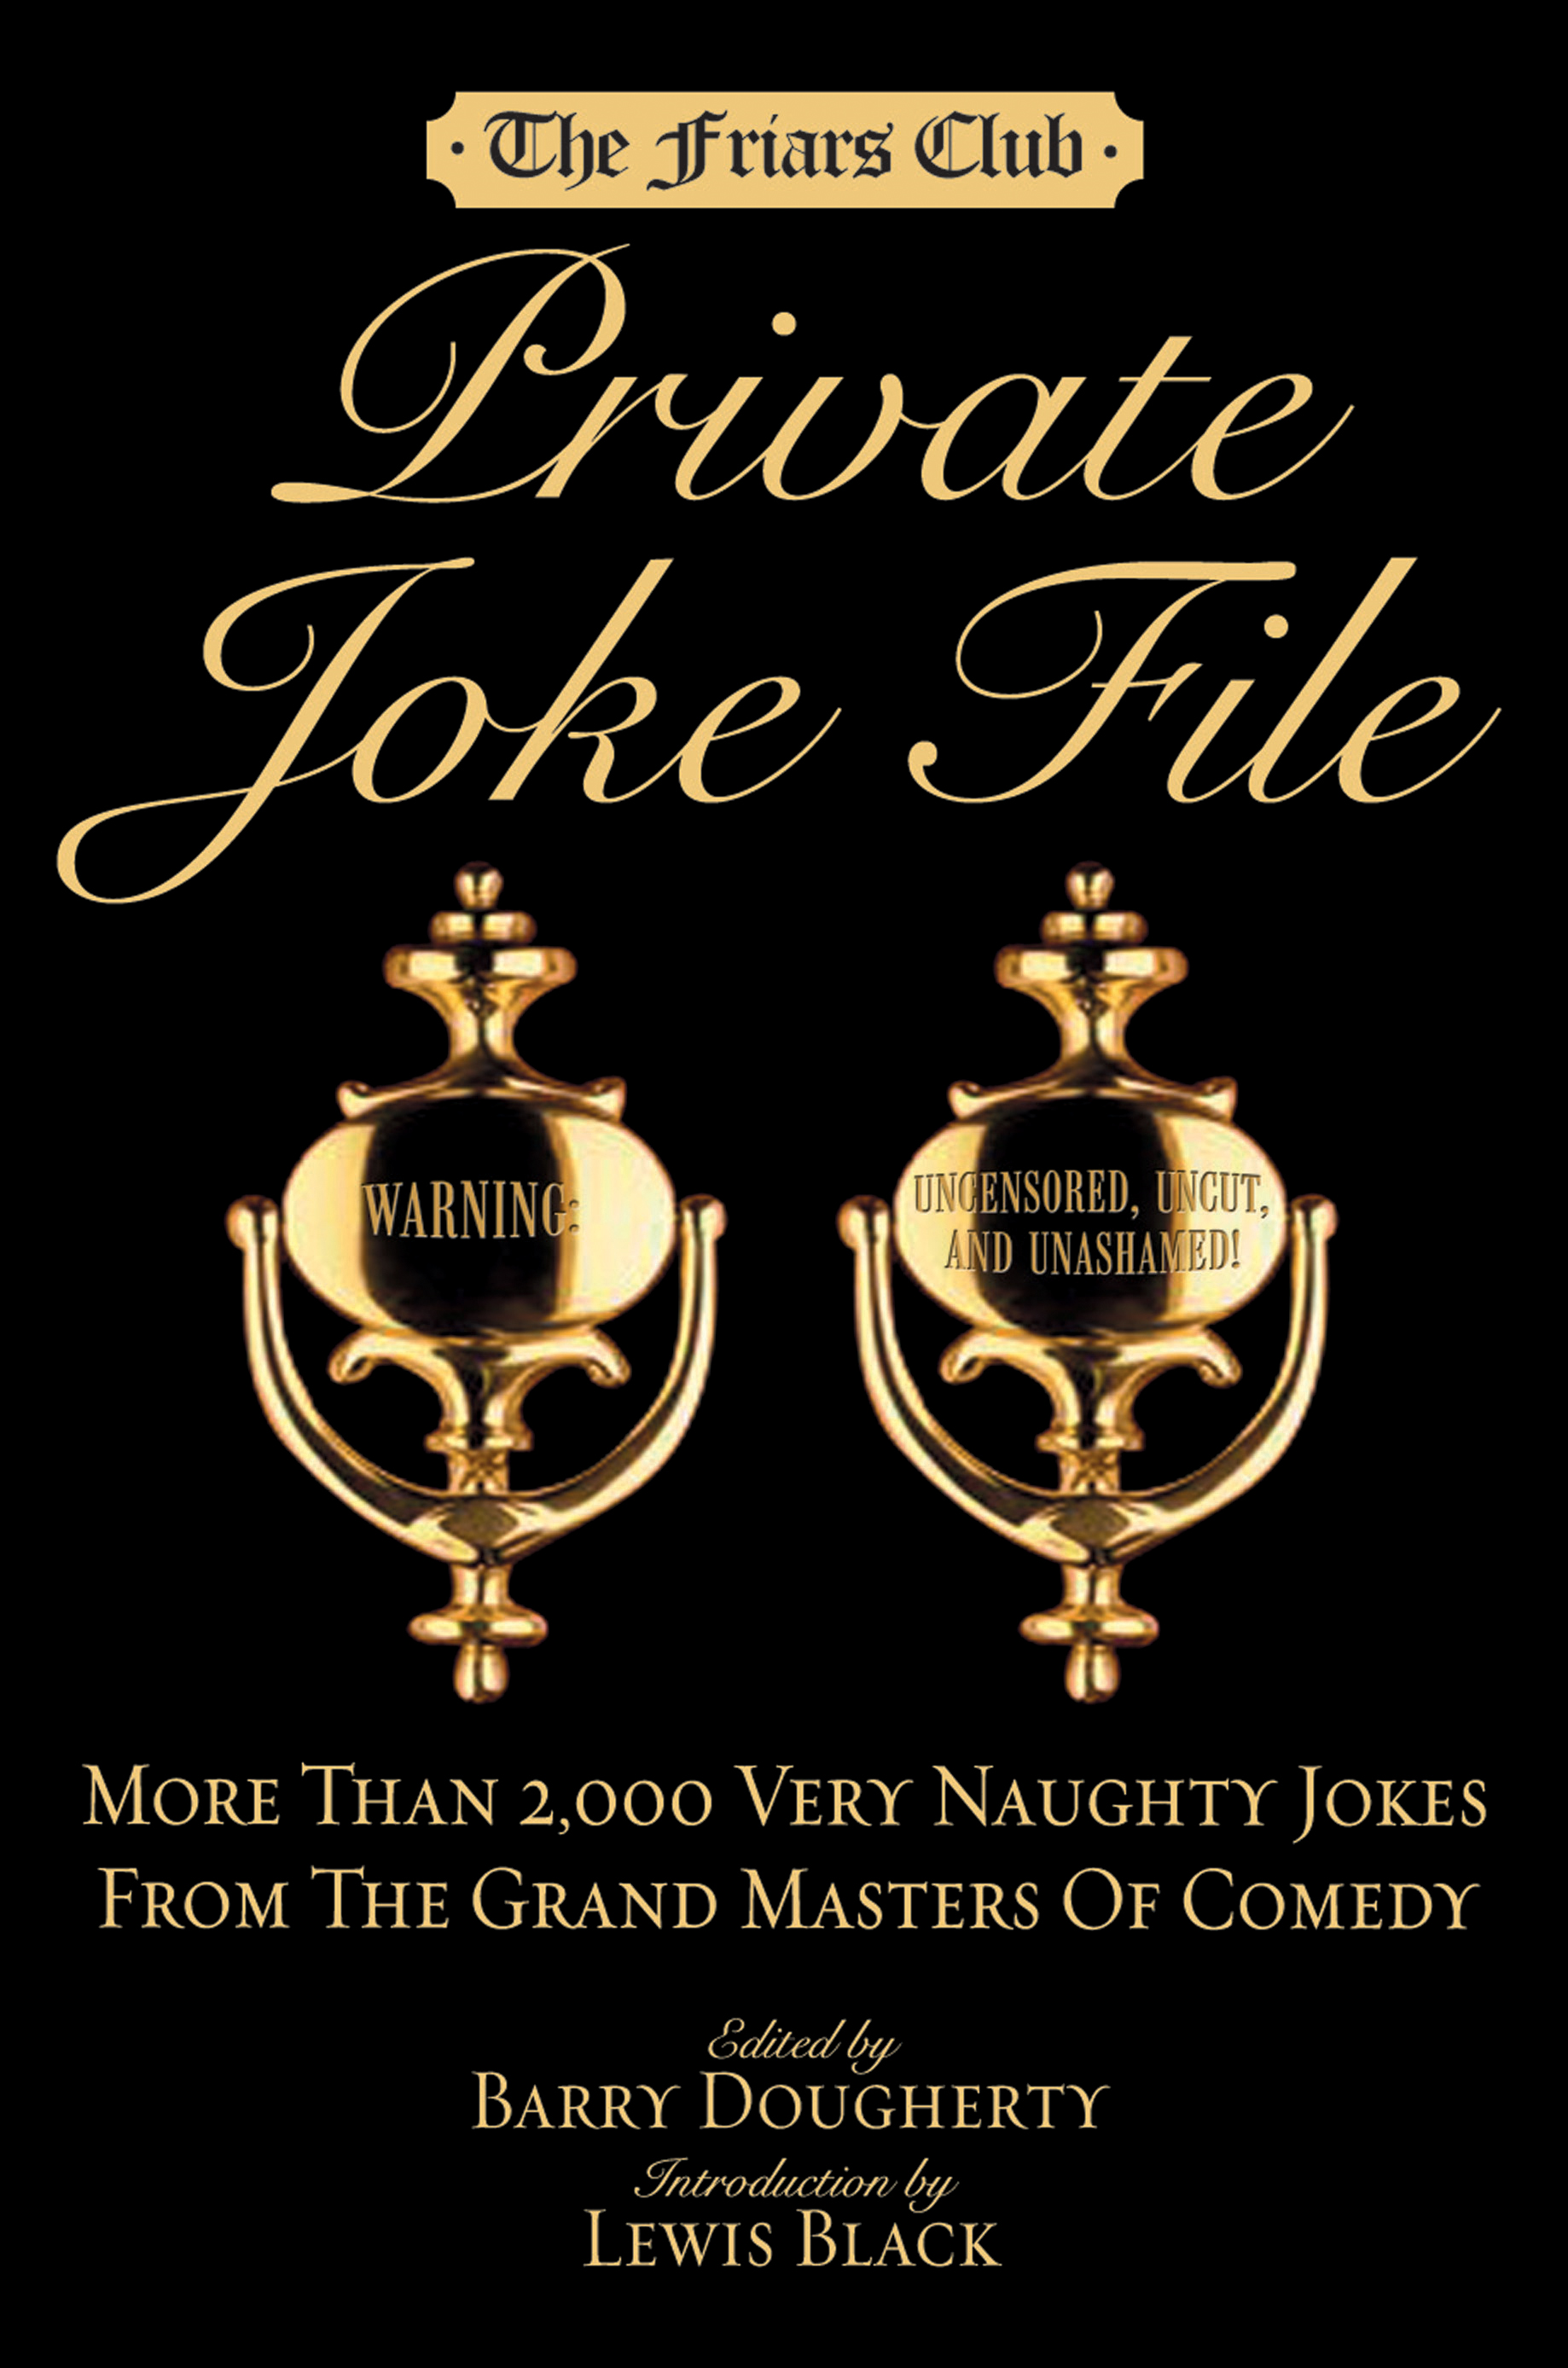 Friars Club Private Joke File By: Barry Dougherty